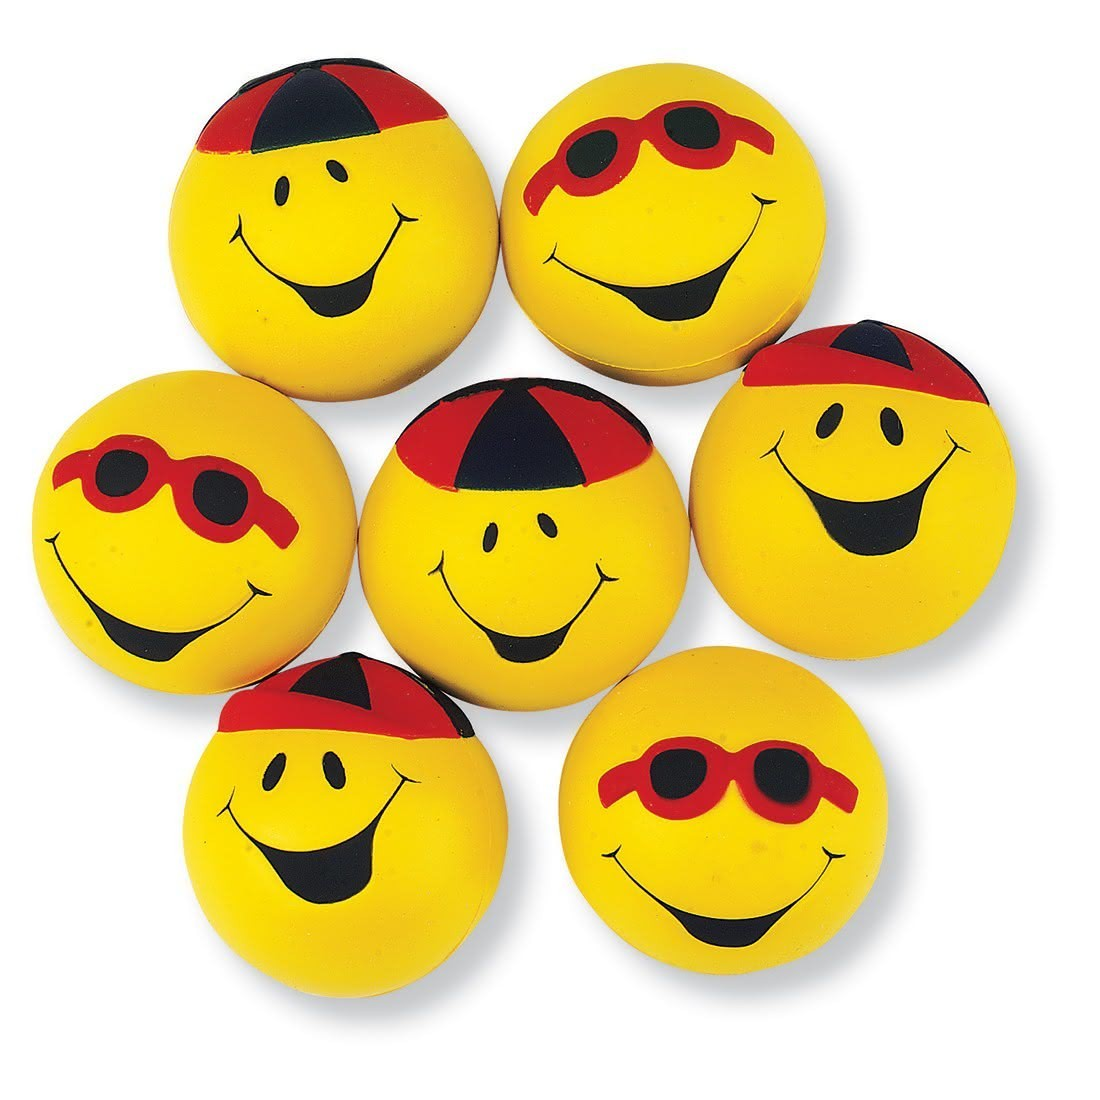 Goofy Smiley Face Stress Balls [image]